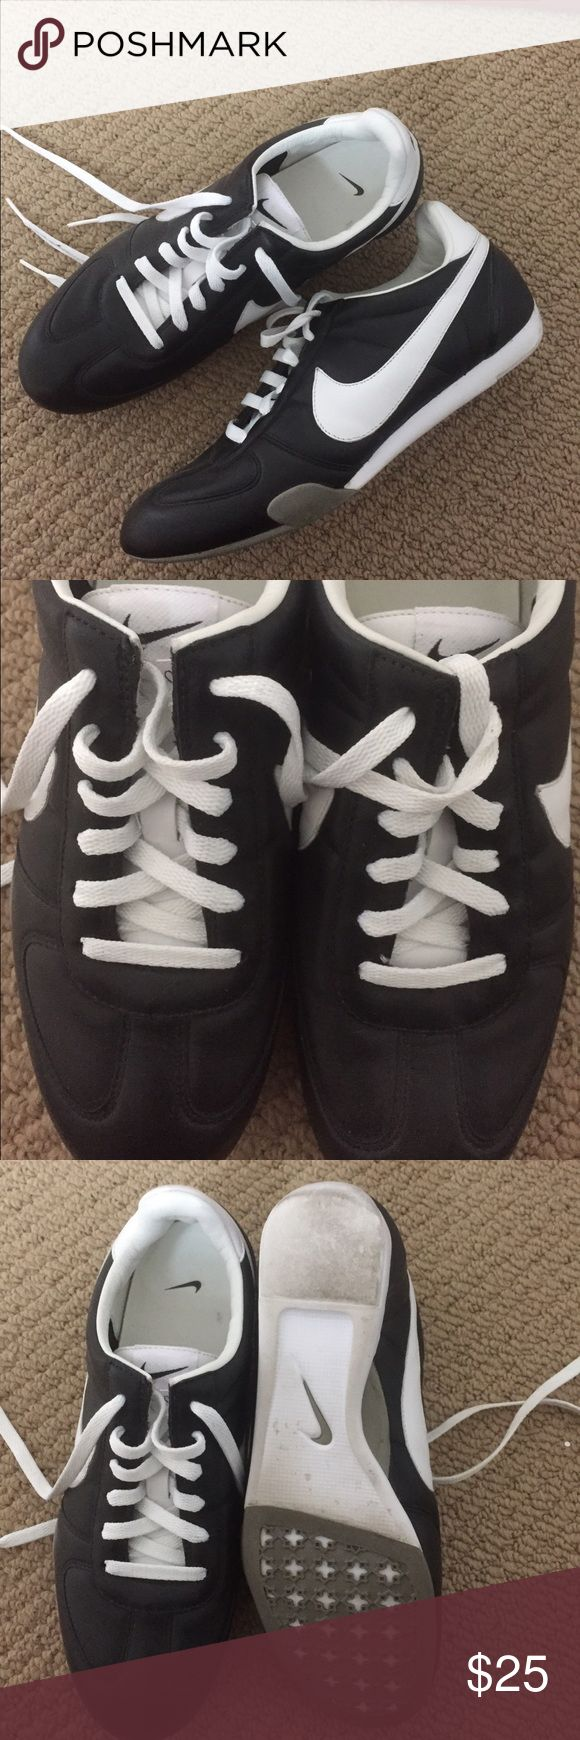 NIKE Shoes, Size 7, Like NEW!! NIKE Shoes, Size 7, Like NEW!! Color: Black/White. Tie up front. All leather. Worn couple times ~ like NEW. Absolutely PERFECT!! Nike Shoes Athletic Shoes